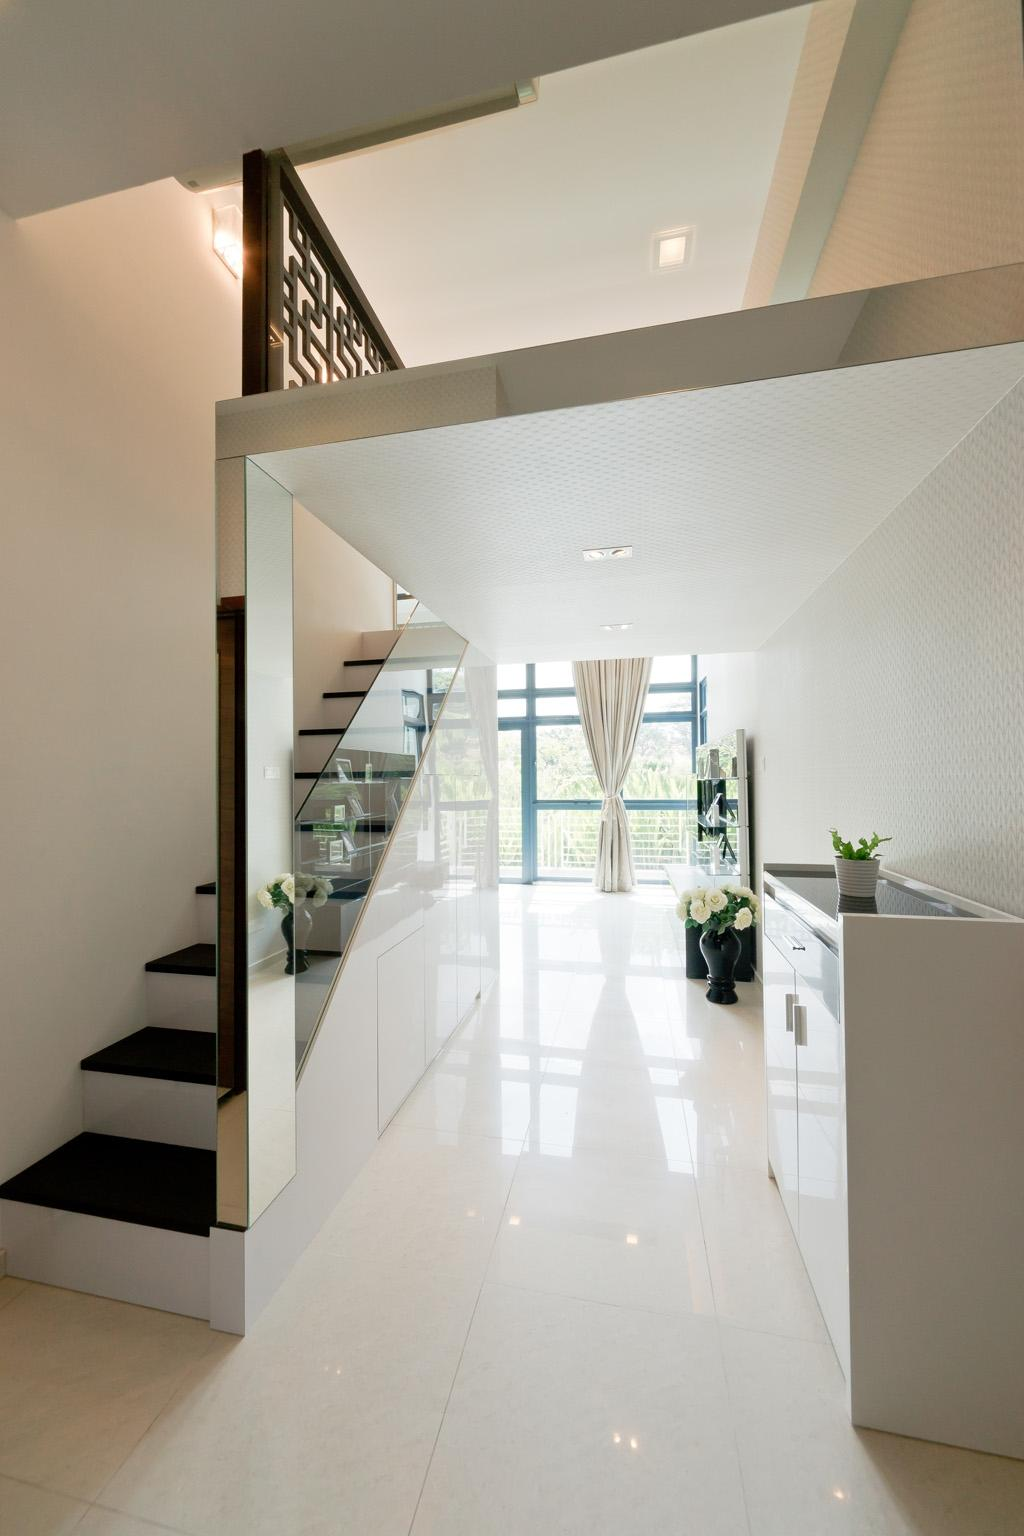 Transitional, Condo, City Square Residences, Interior Designer, Unity ID, Stairs, Staircase, Columns, Mirror, Marble Tile, Marble Tiles, White, Loft, Full Length Windows, Curtains, Cabinet, Railing, Glass Railing, Handrail